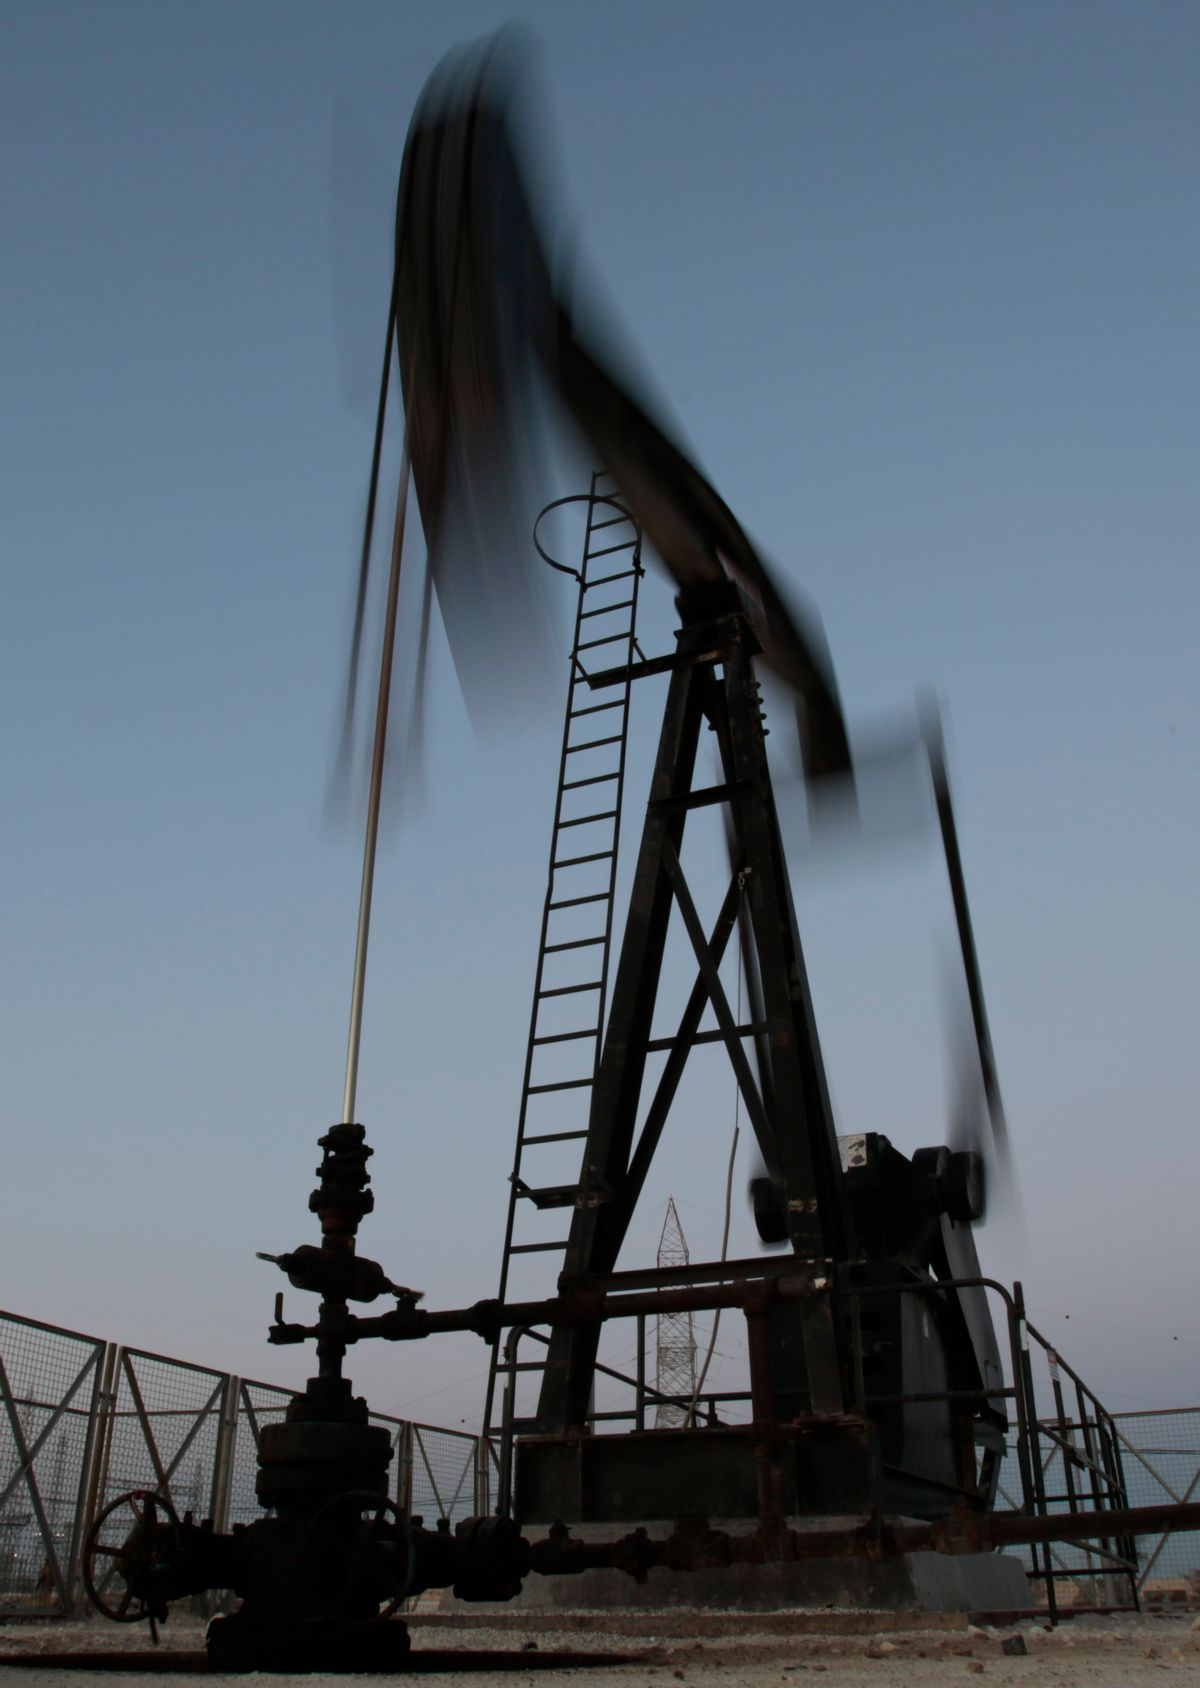 An oil pump works, on Saturday, April 16, 2016, in the desert oil fields of Sakhir, Bahrain. Oil-producing countries are to meet in Qatar on Sunday, April 17, 2016, to discuss a plan to freeze output but their gathering comes as nations like Iran rapidly ramp up their pumping. (AP Photo/Hasan Jamali) (AP)